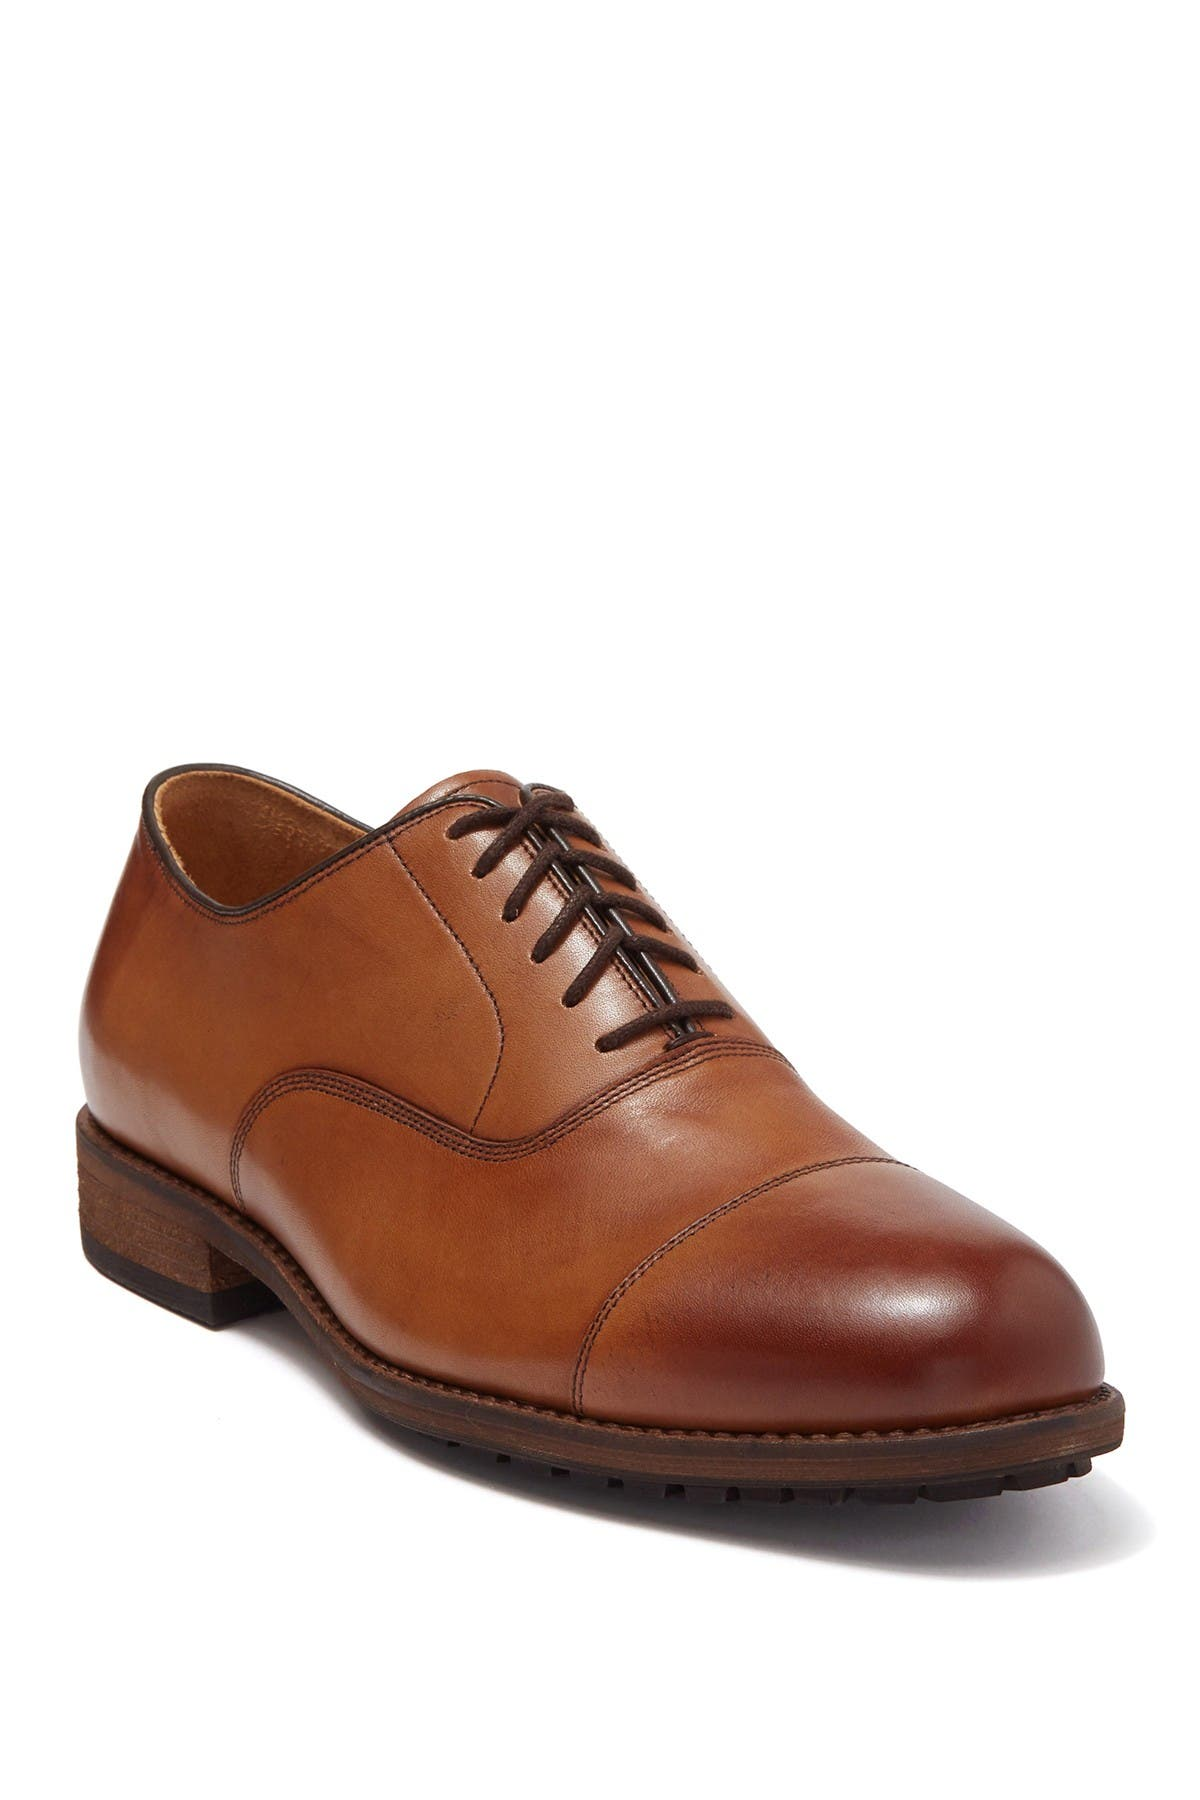 Image of Warfield & Grand Jamison Leather Cap Toe Oxford